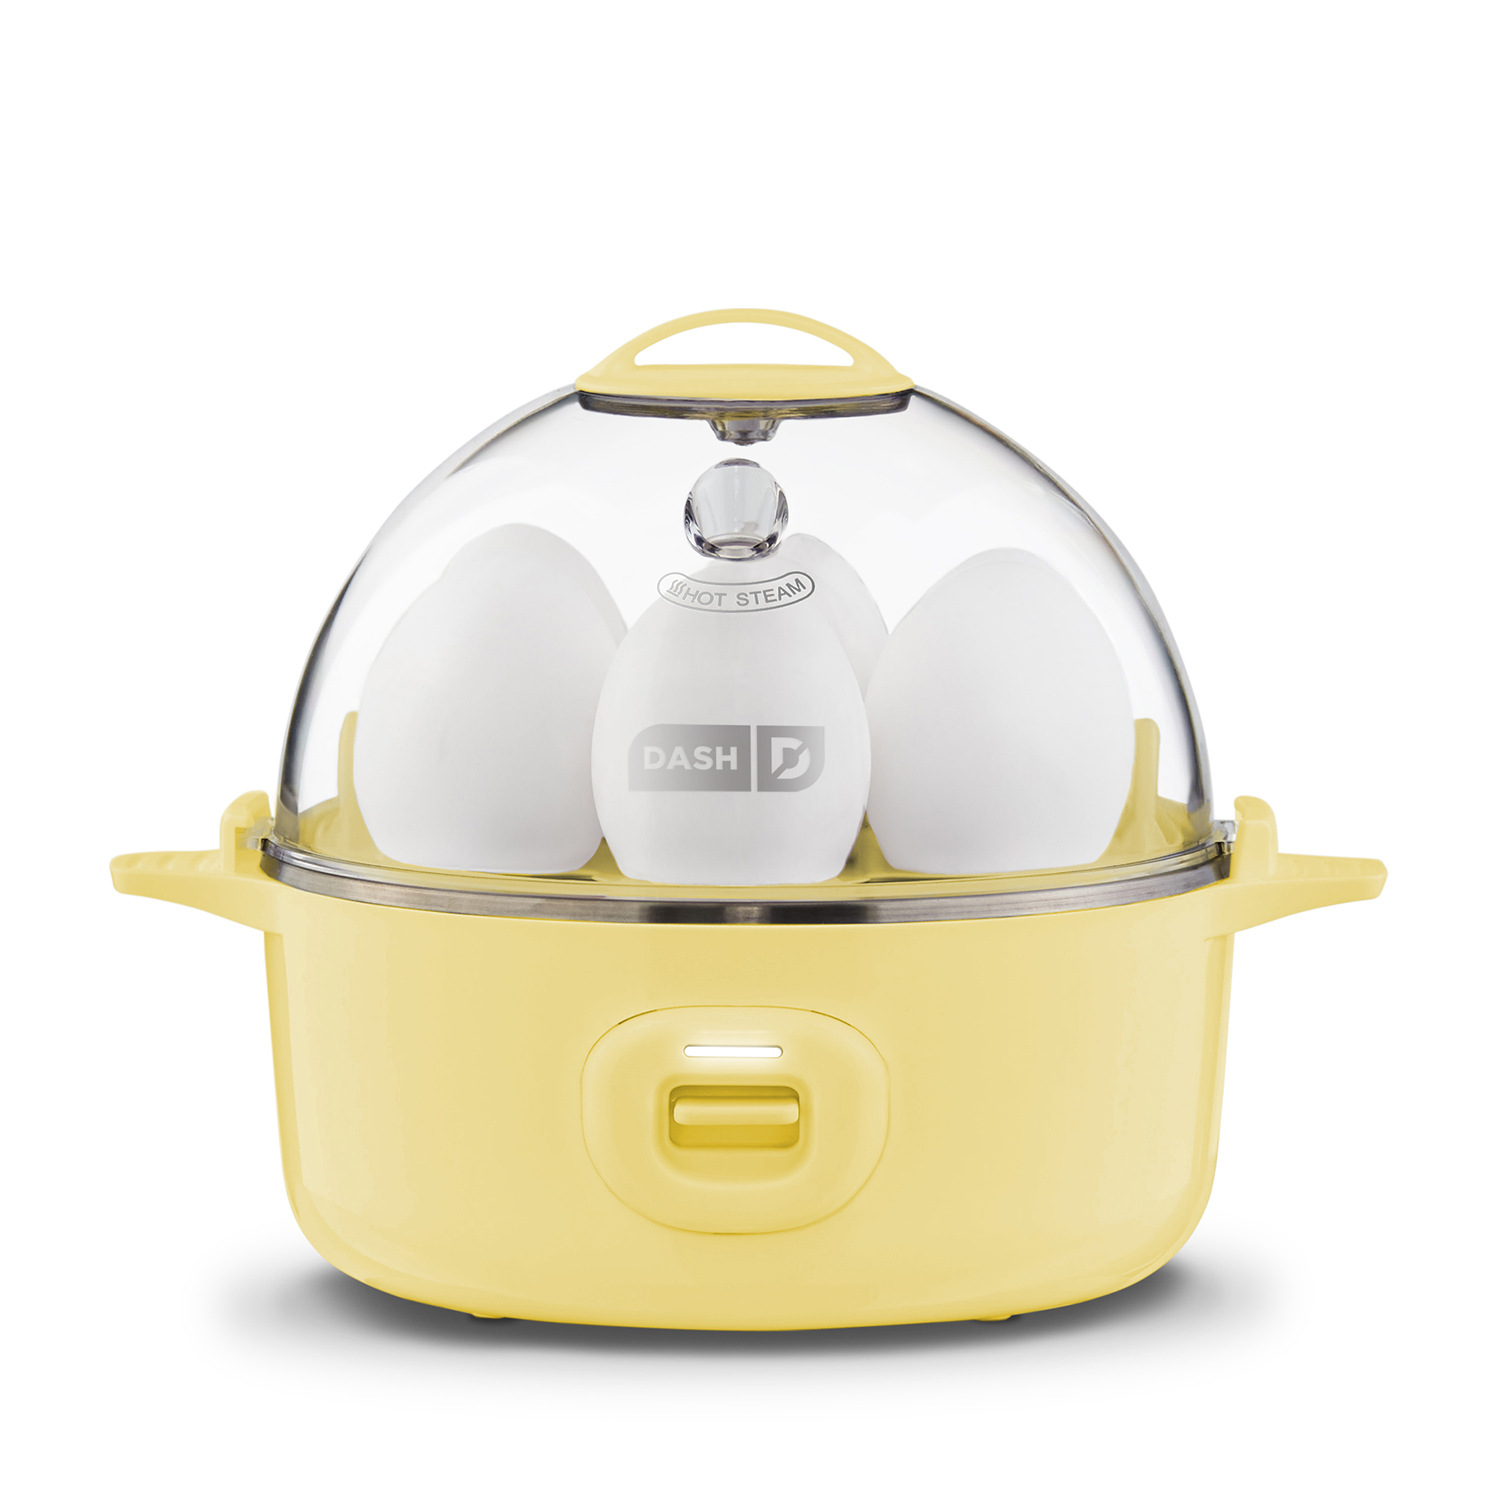 Countertop egg cooker